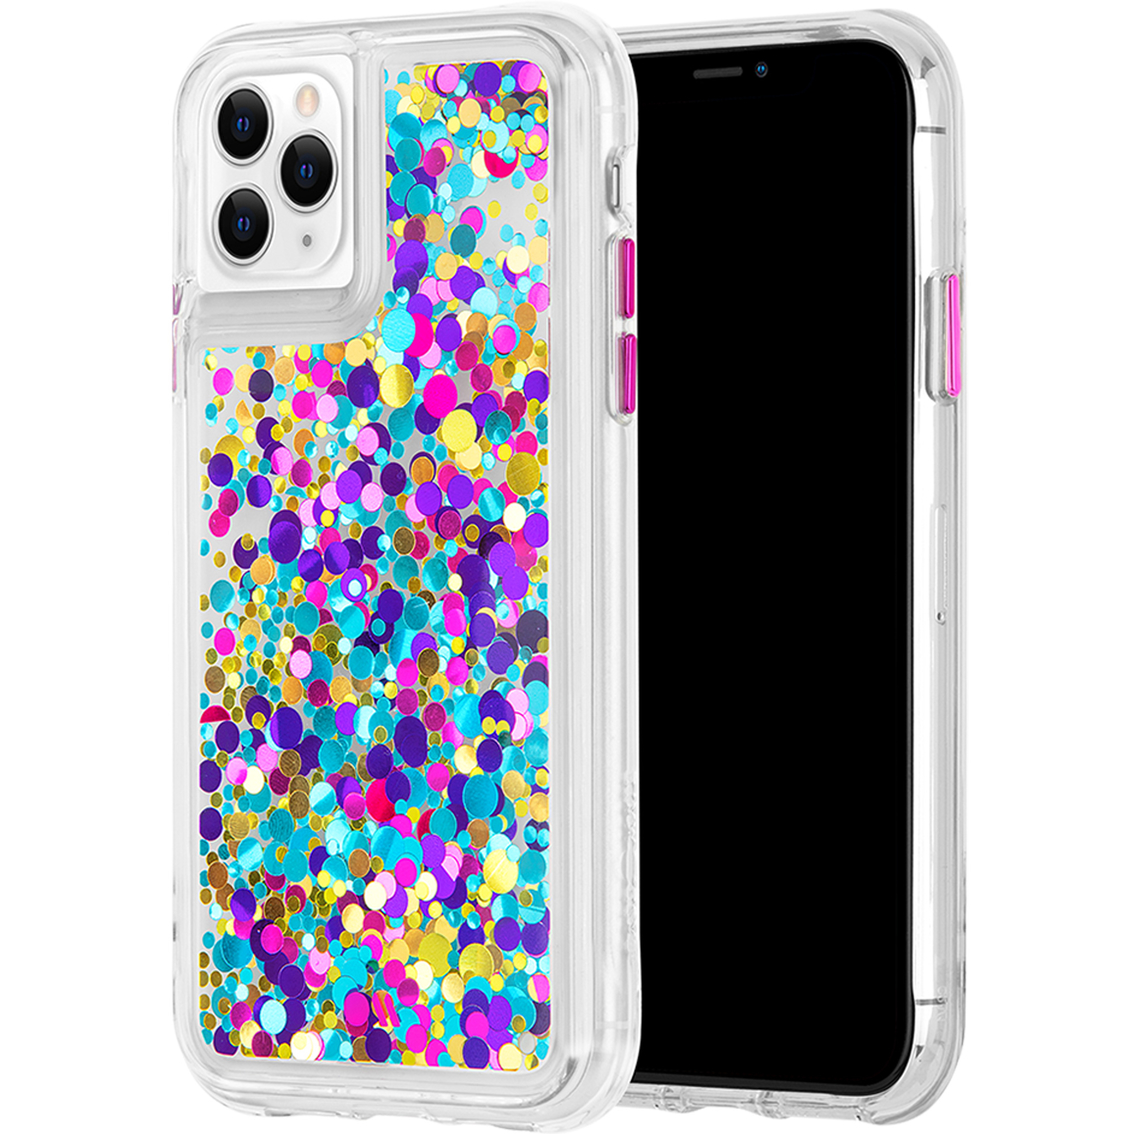 Capy in the Sky with Diamonds iphone 11 case